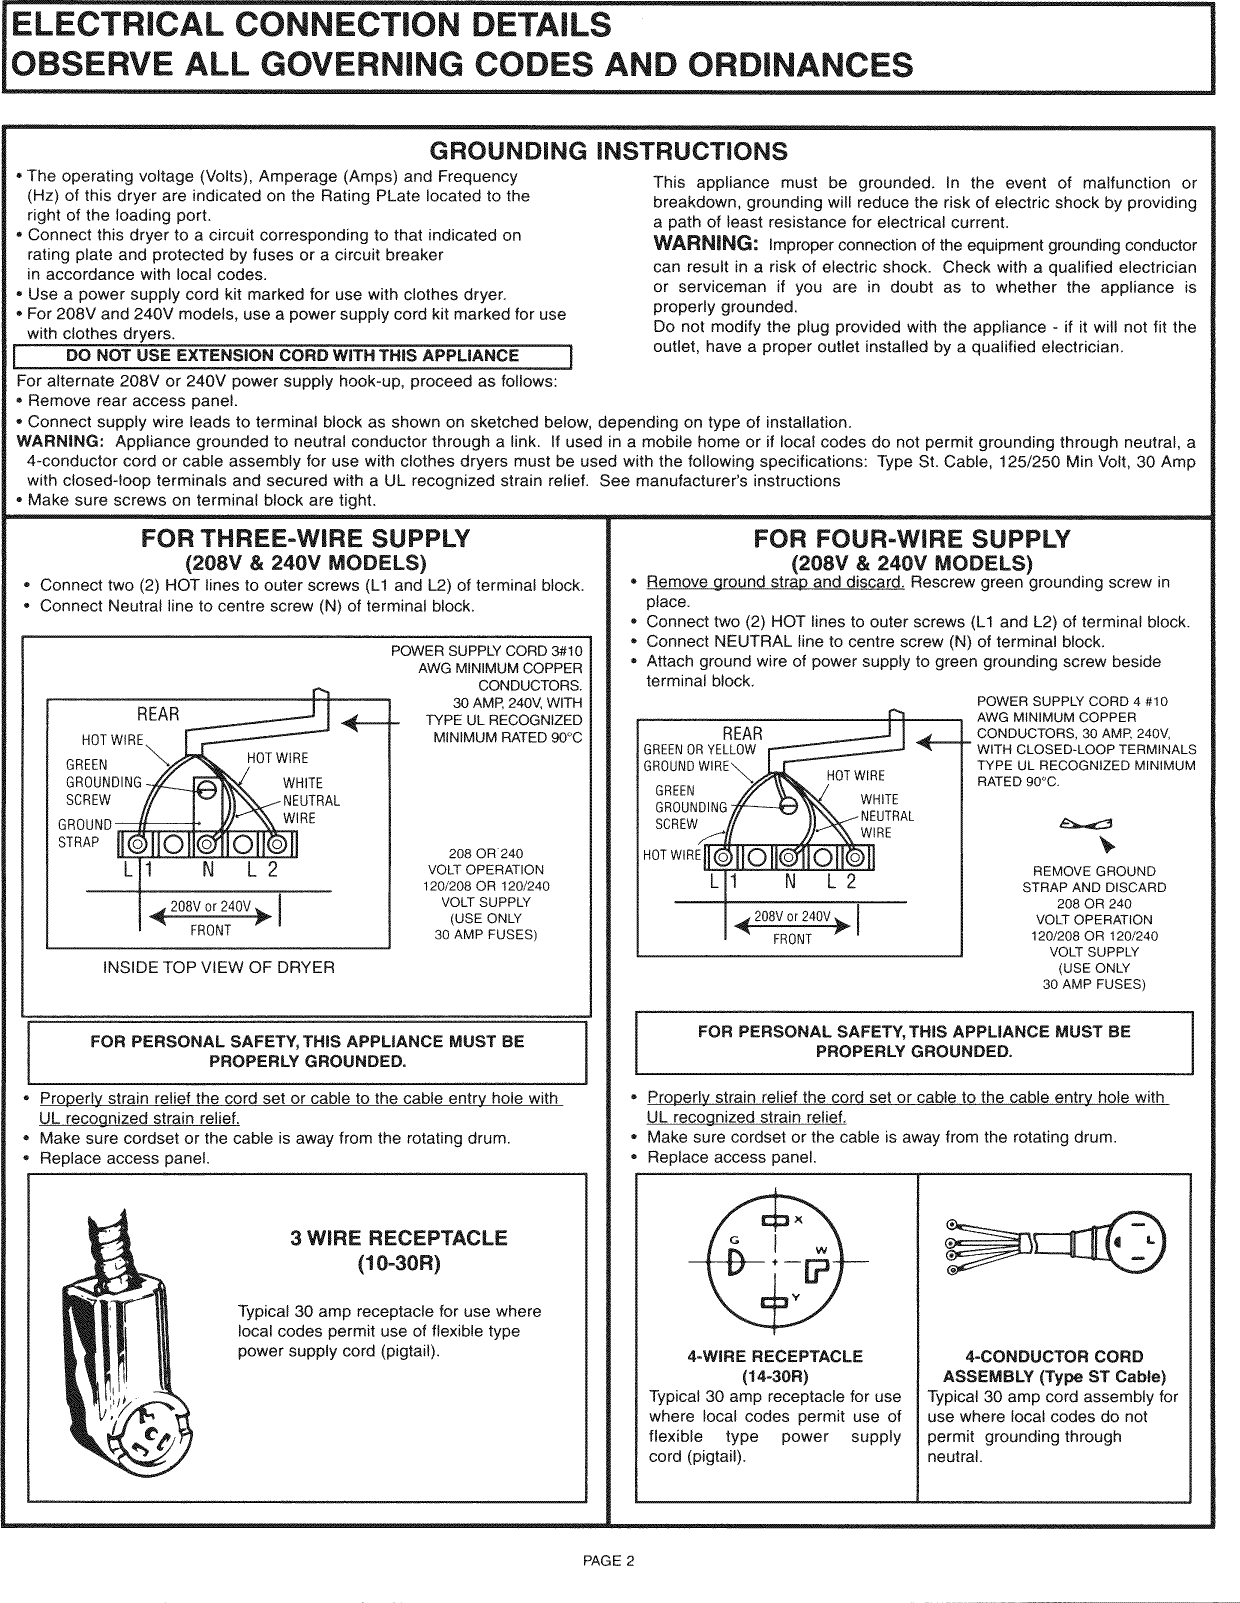 Ge Dskp333ec0ww User Manual Electric Dryer Manuals And Guides L0809330 Three Wire Diagram Page 2 Of 4